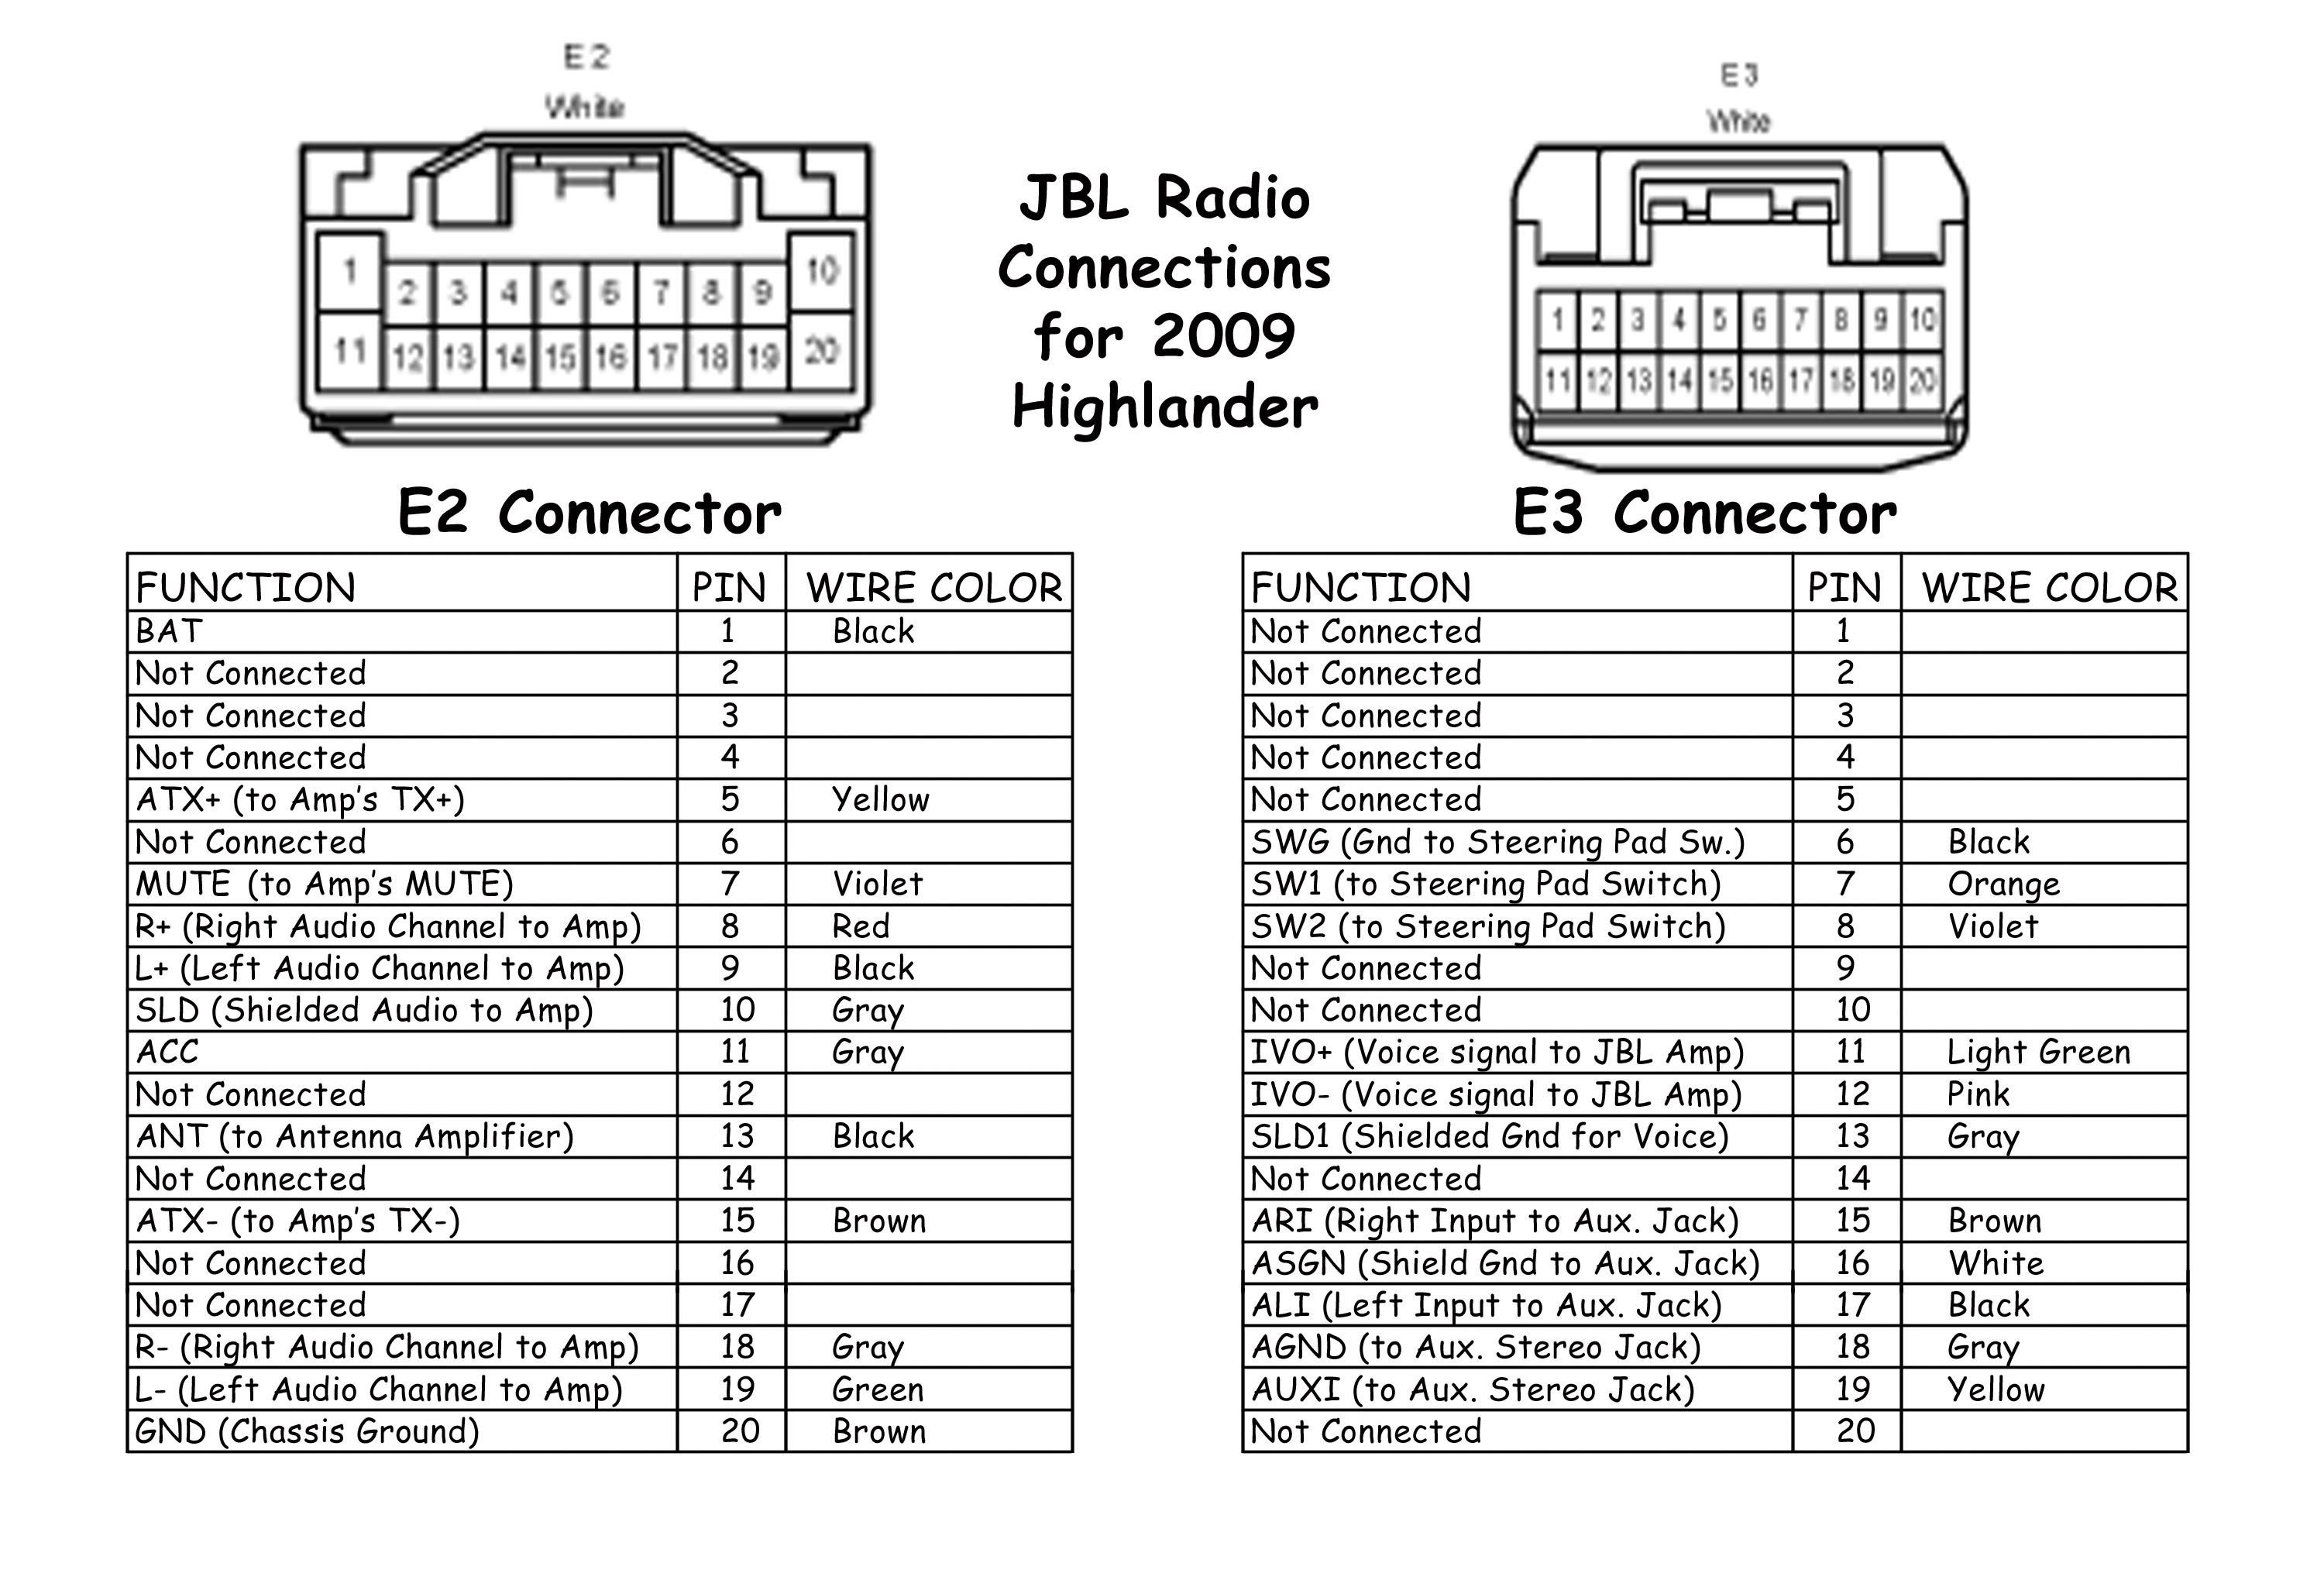 Unique Automotive Wiring Diagram Color Codes Diagram Wiringdiagram Diagramming Diagramm Visuals Visualisati Pioneer Car Stereo Car Stereo Sony Car Stereo